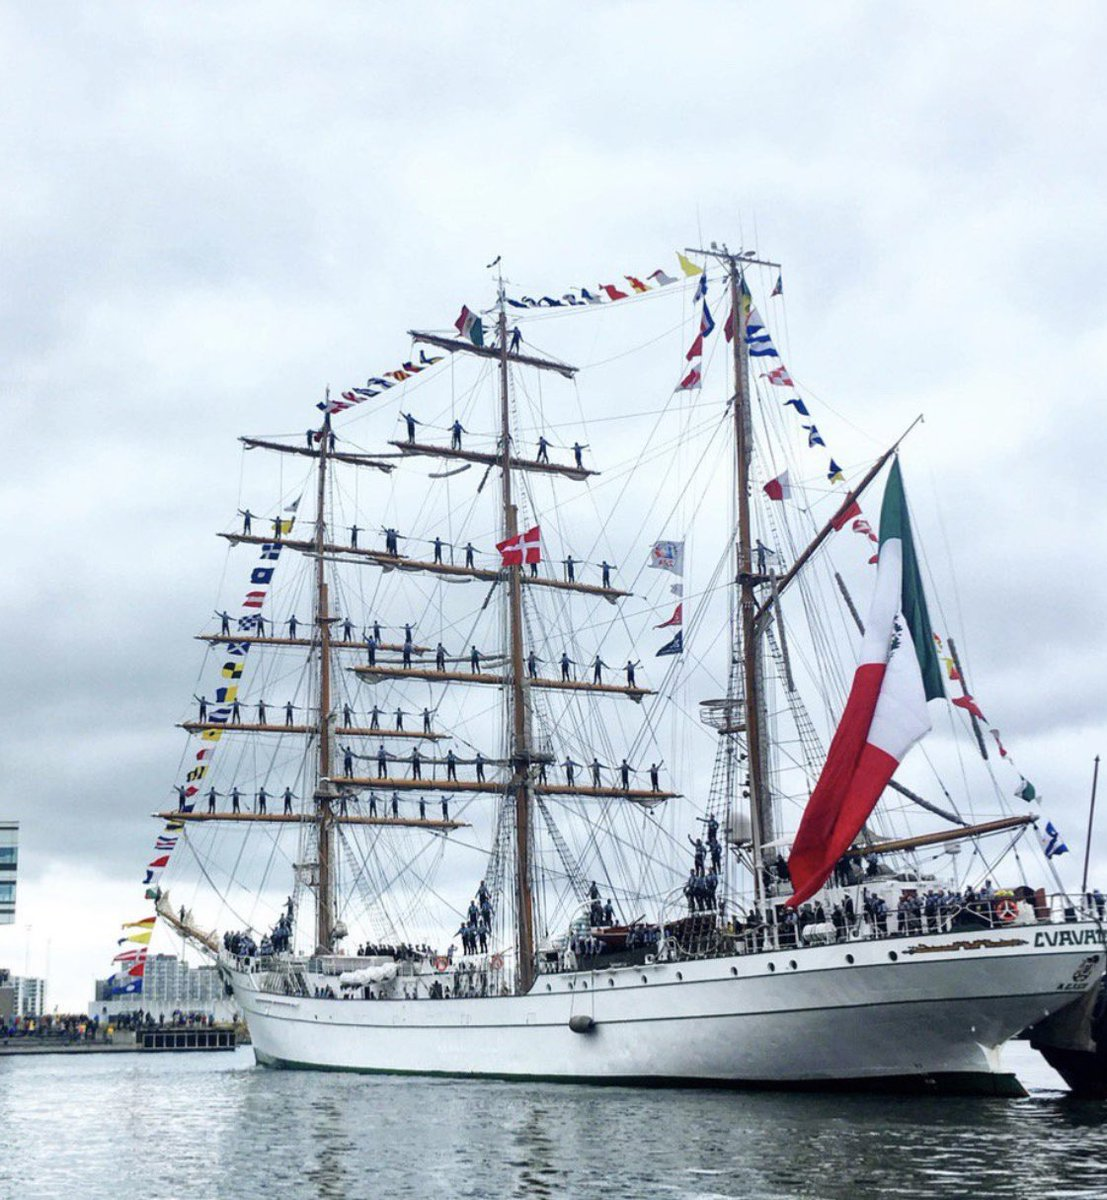 Aye aye, Captain! @TallShipsRaces grand finale 2019 sees the arrival today of the world's most magnificent sailing ships in #Aarhus for the city's biggest party of the year (and Denmark's biggest ferris wheel too!) 🎡 welcome to 🇩🇰@VisitAarhus everyone ⚓️